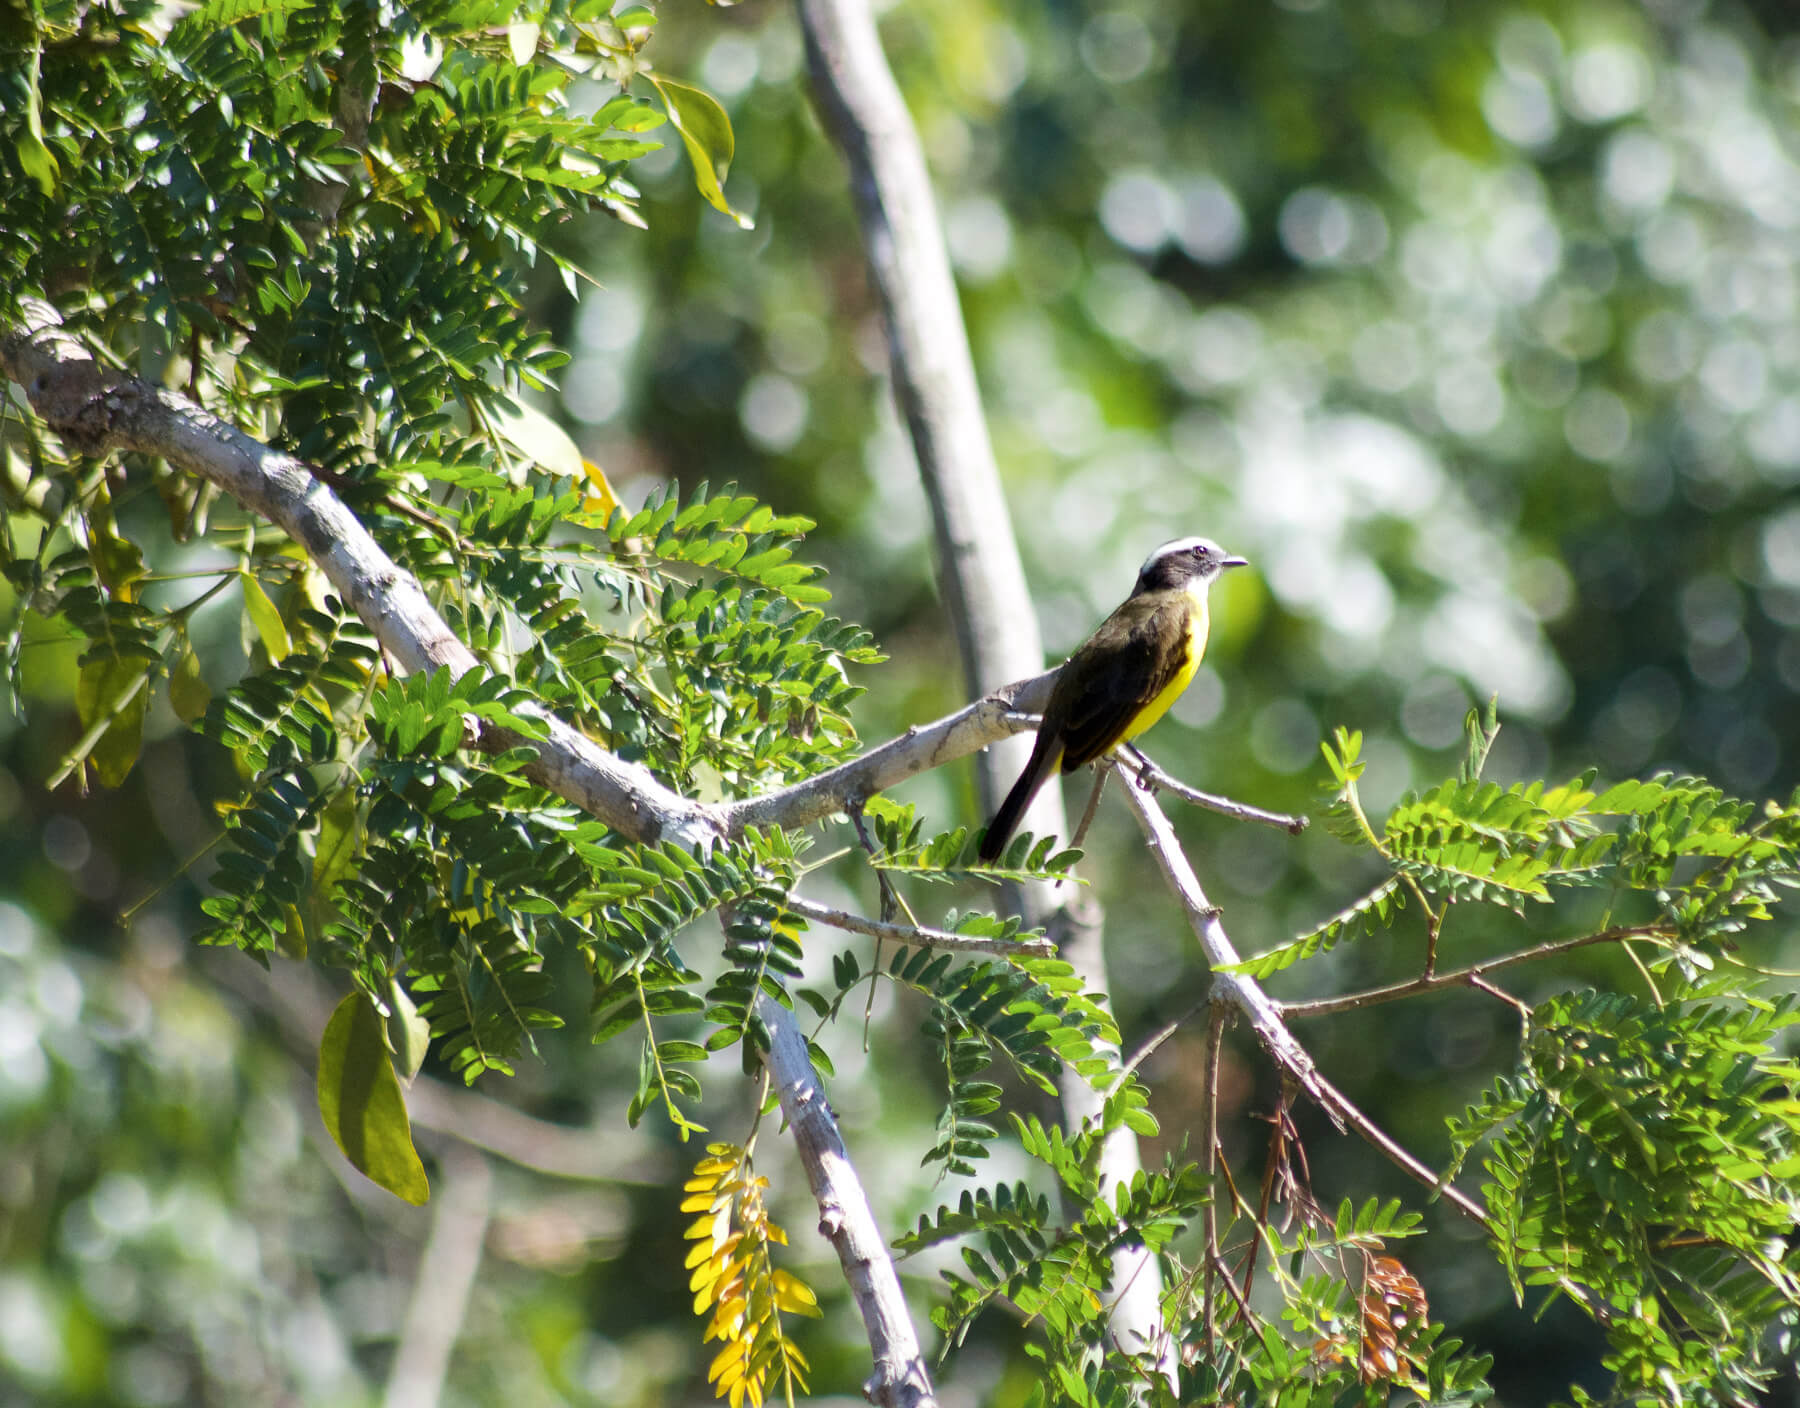 A beautiful yellow and black bird perched on a branch in the Peruvian Amazon